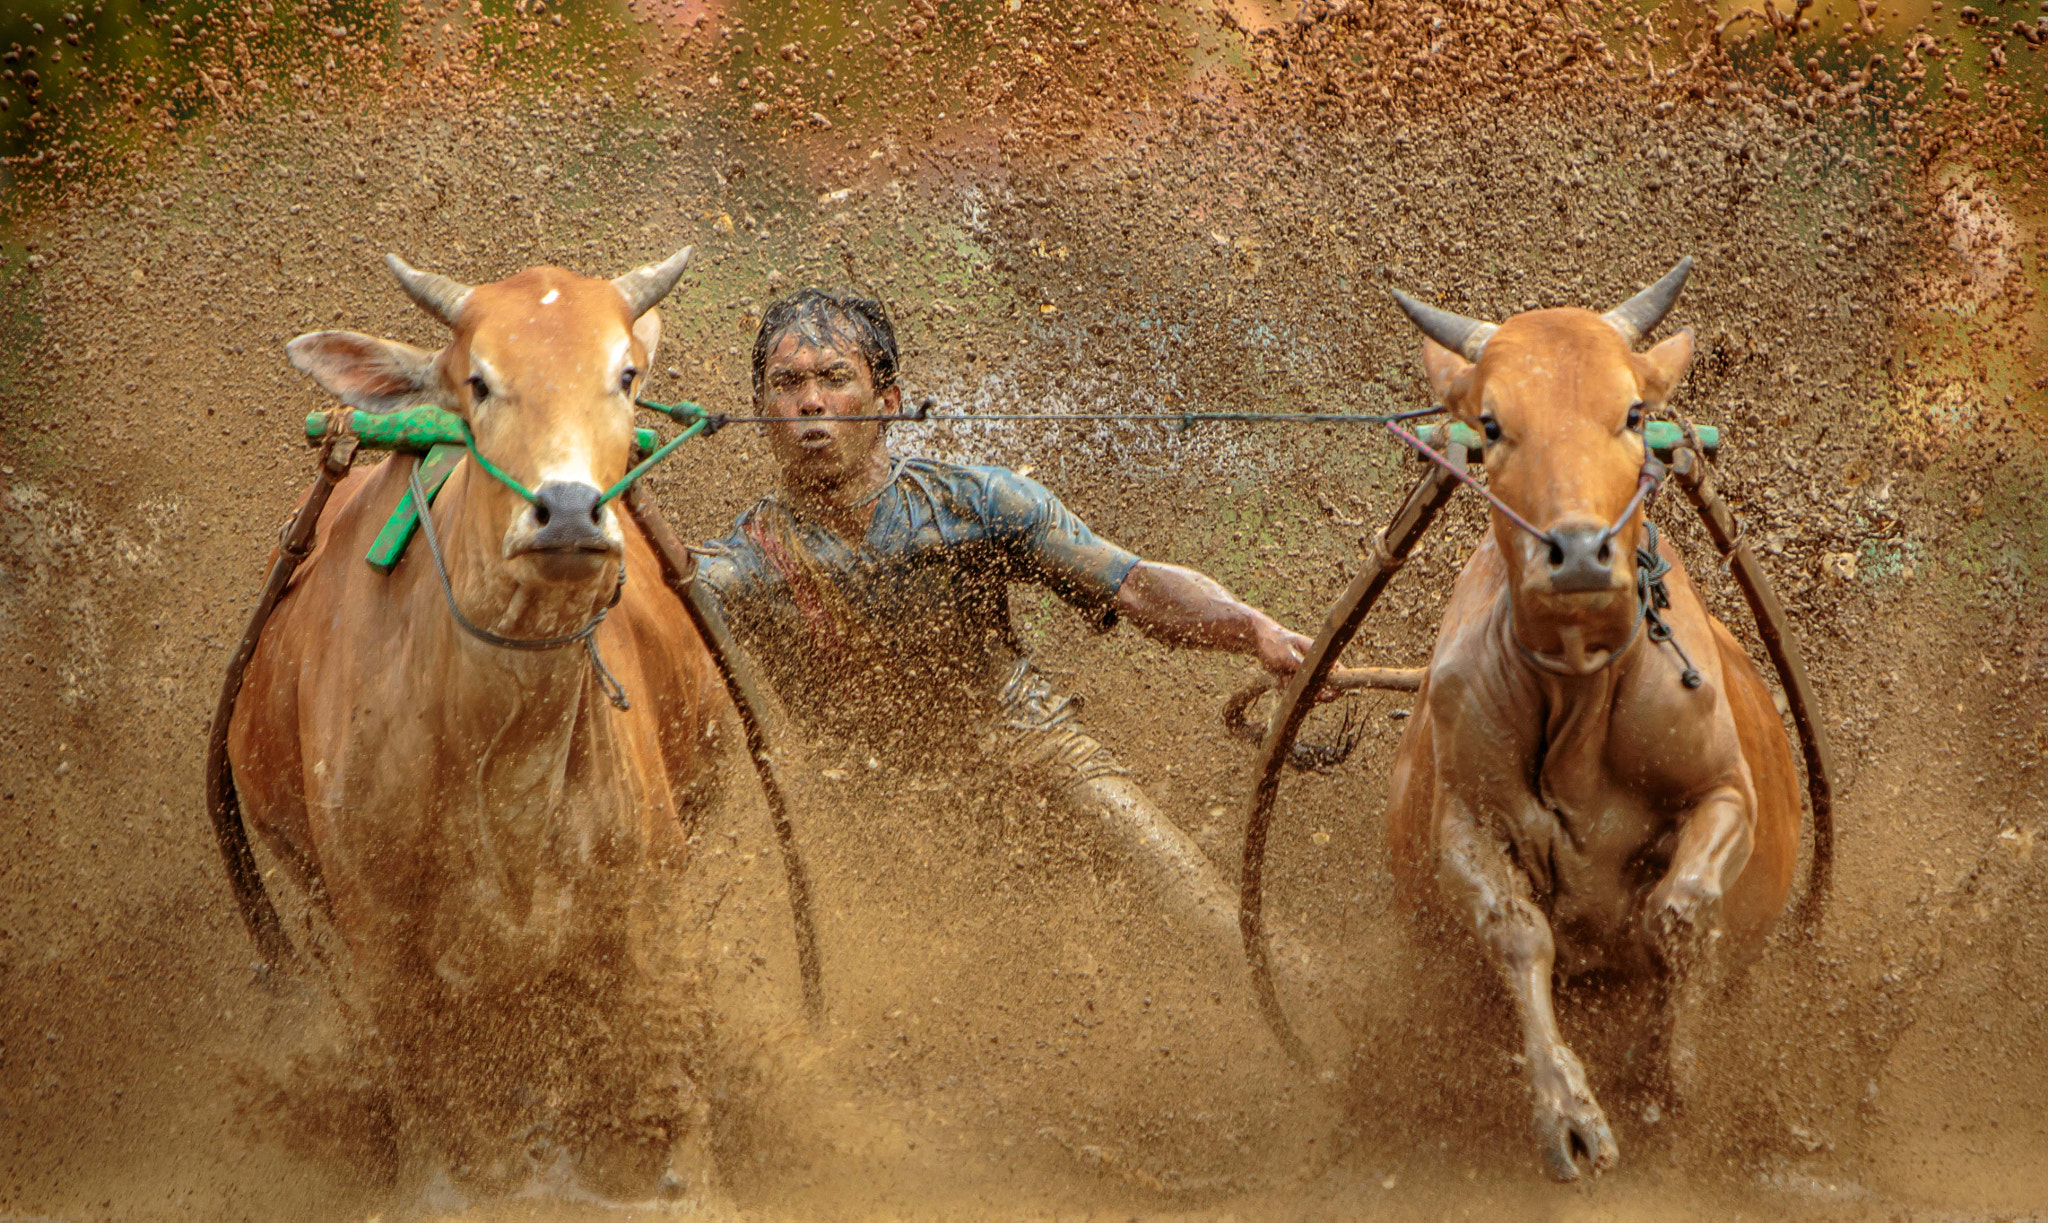 Photograph Cow Race 2 by Dino Bramanto on 500px